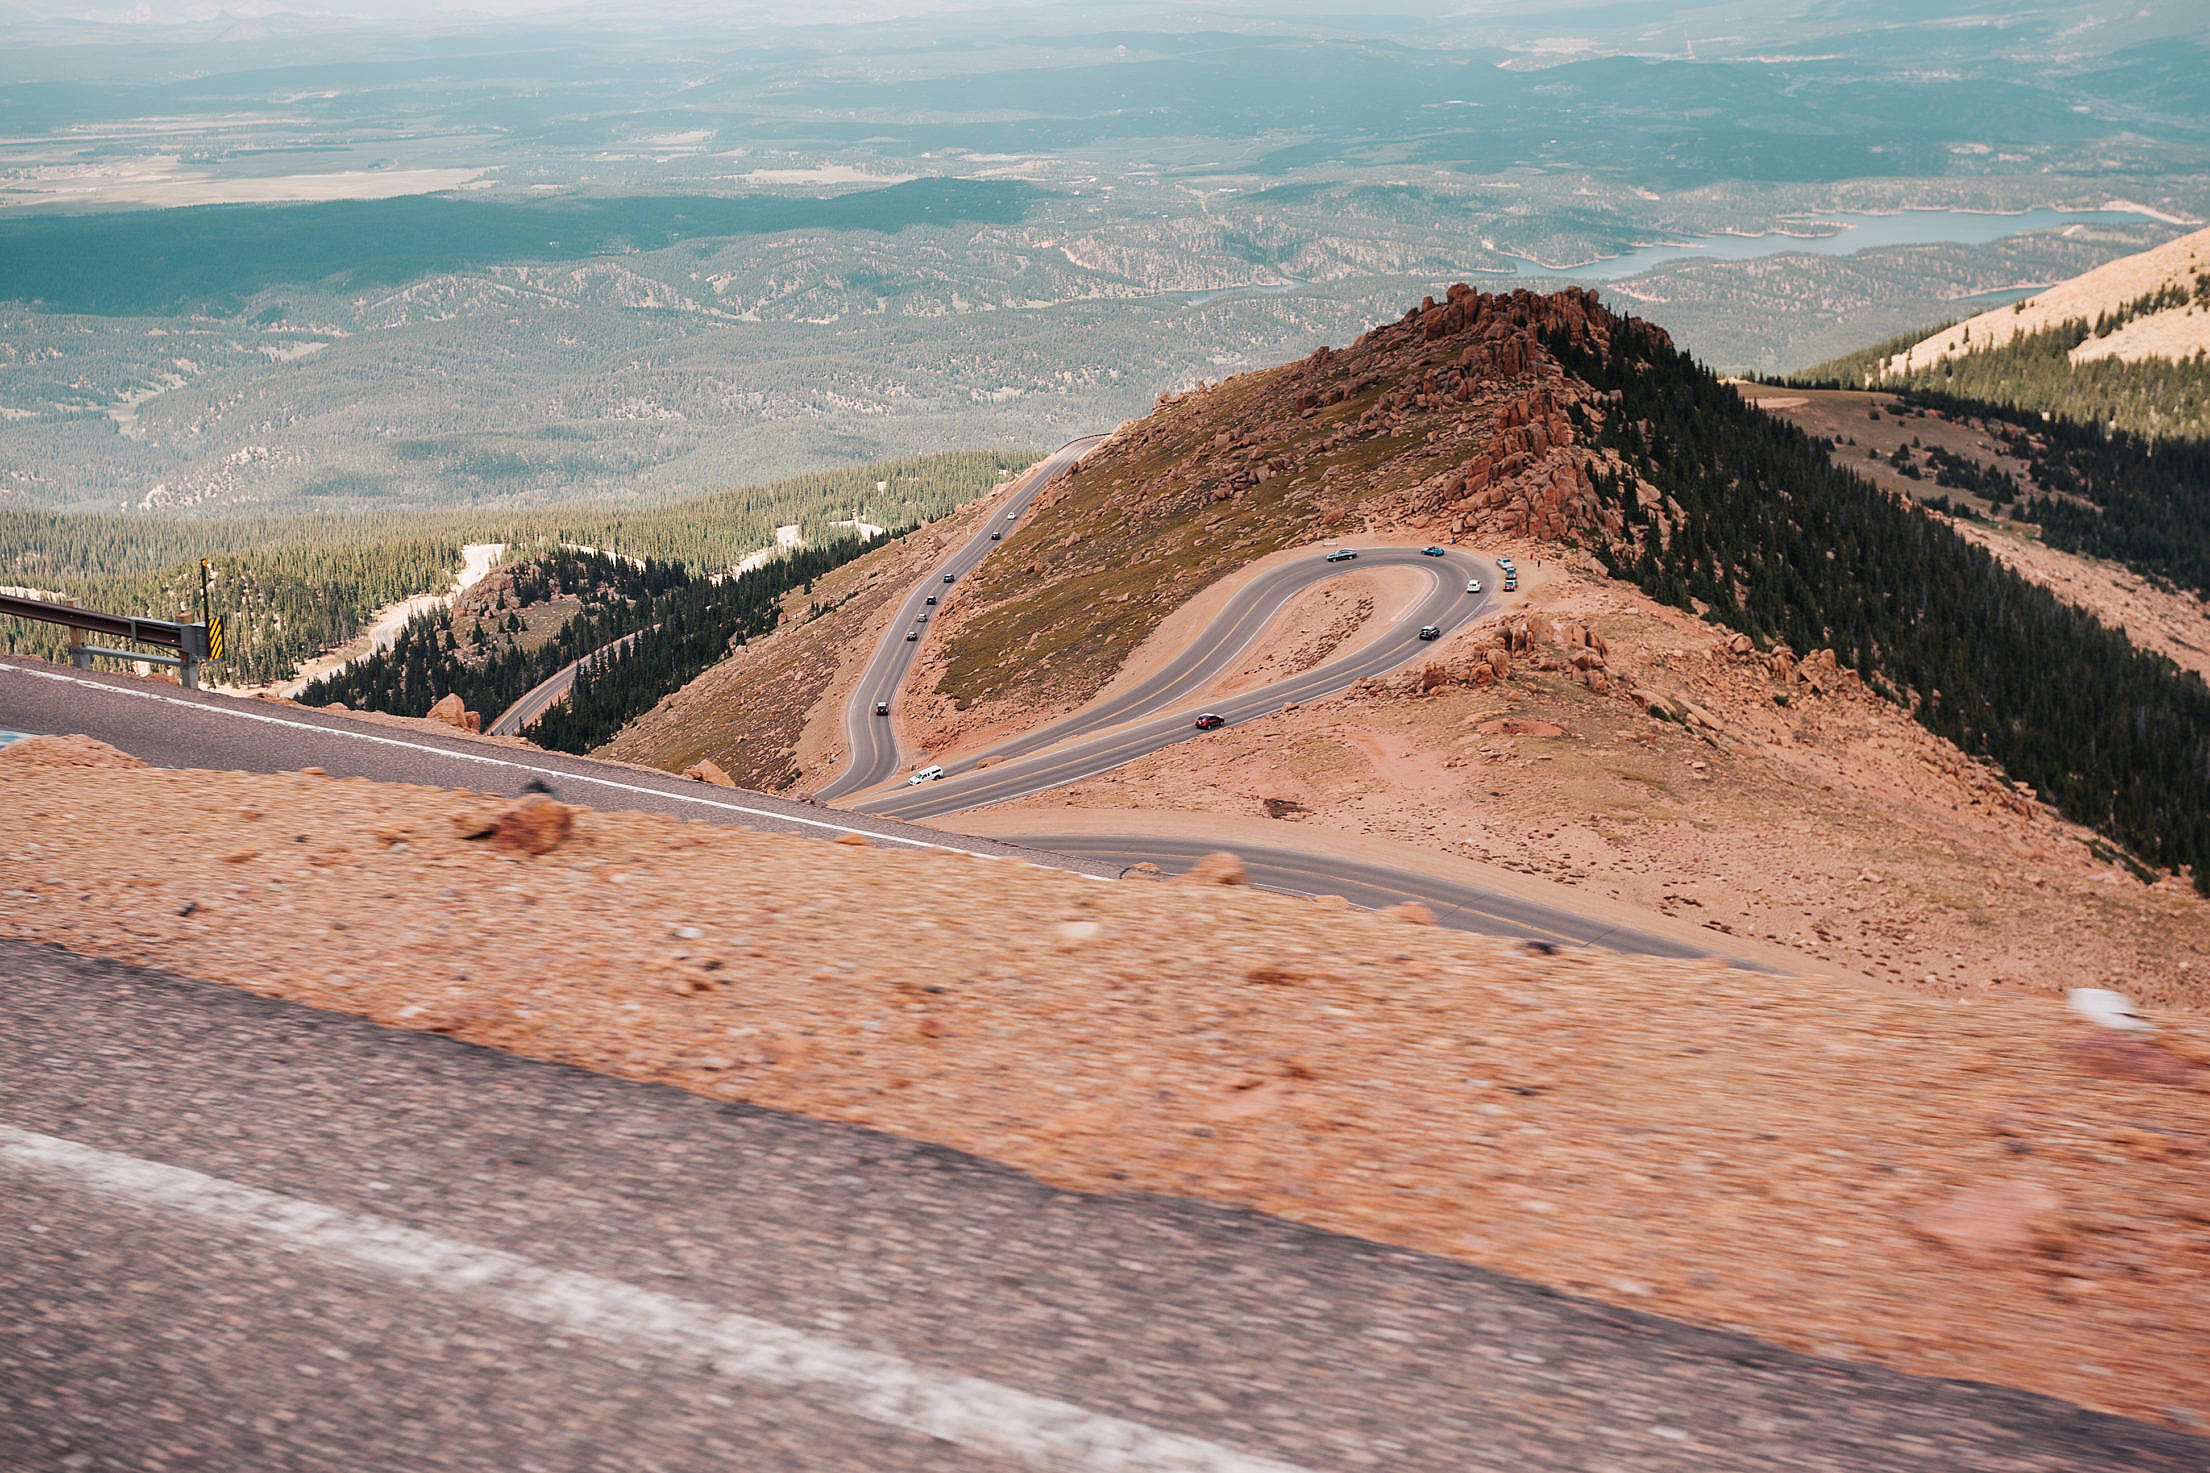 View of the Colorado's Curvy Pikes Peak Road Free Stock Photo